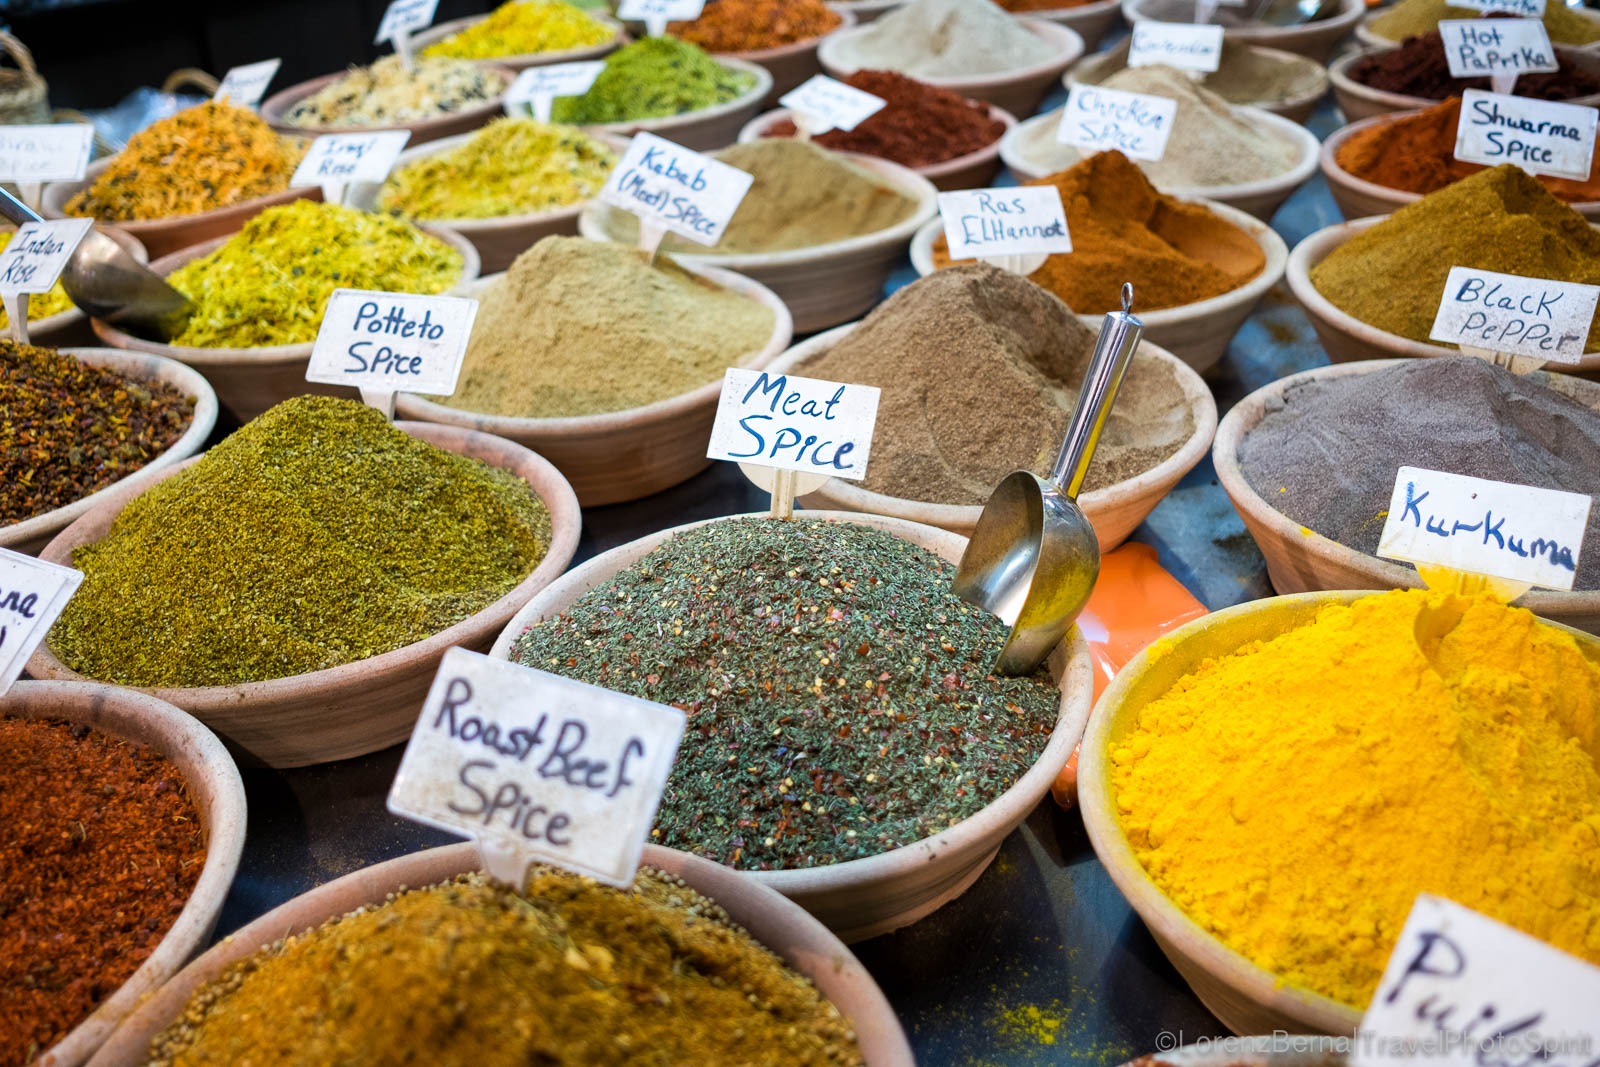 Spices in a local shop, Jerusalem, Israel.